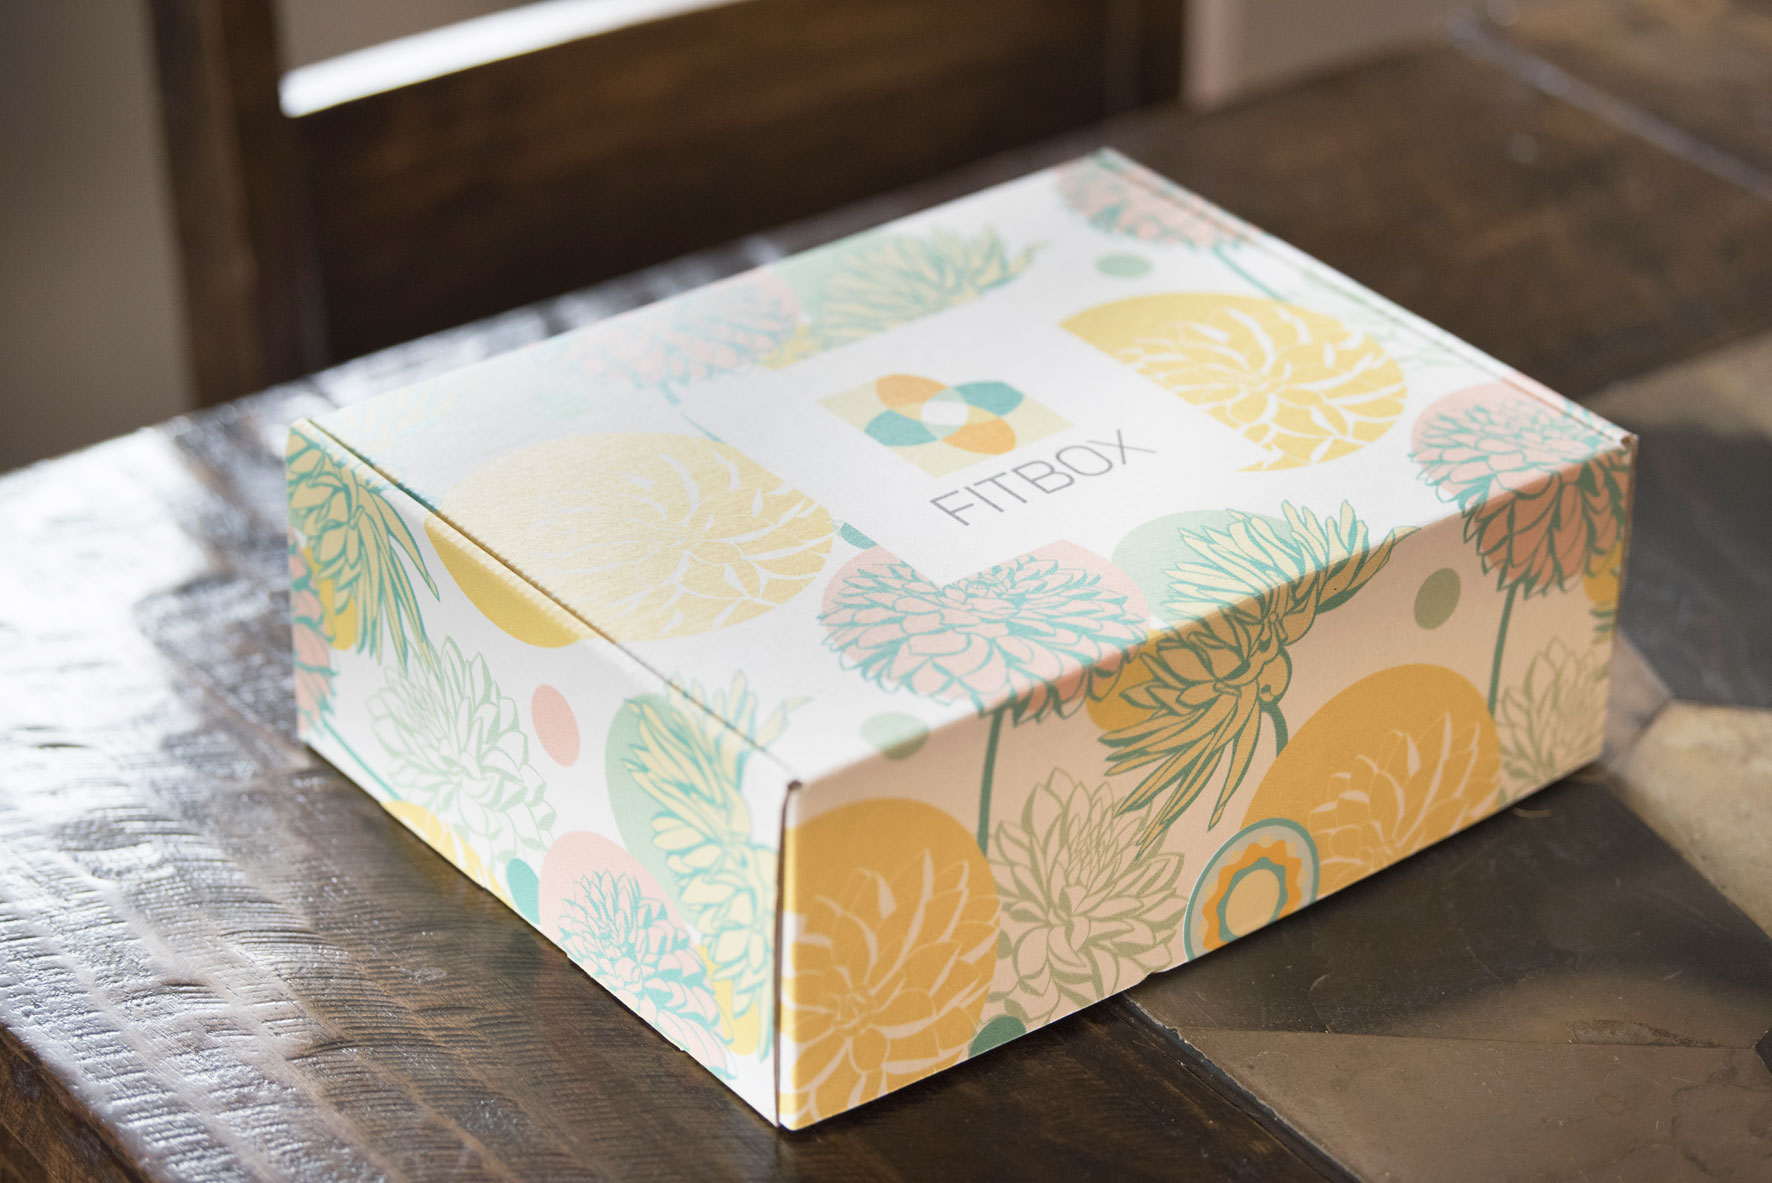 Fitness Box Subscription Fitbox Review